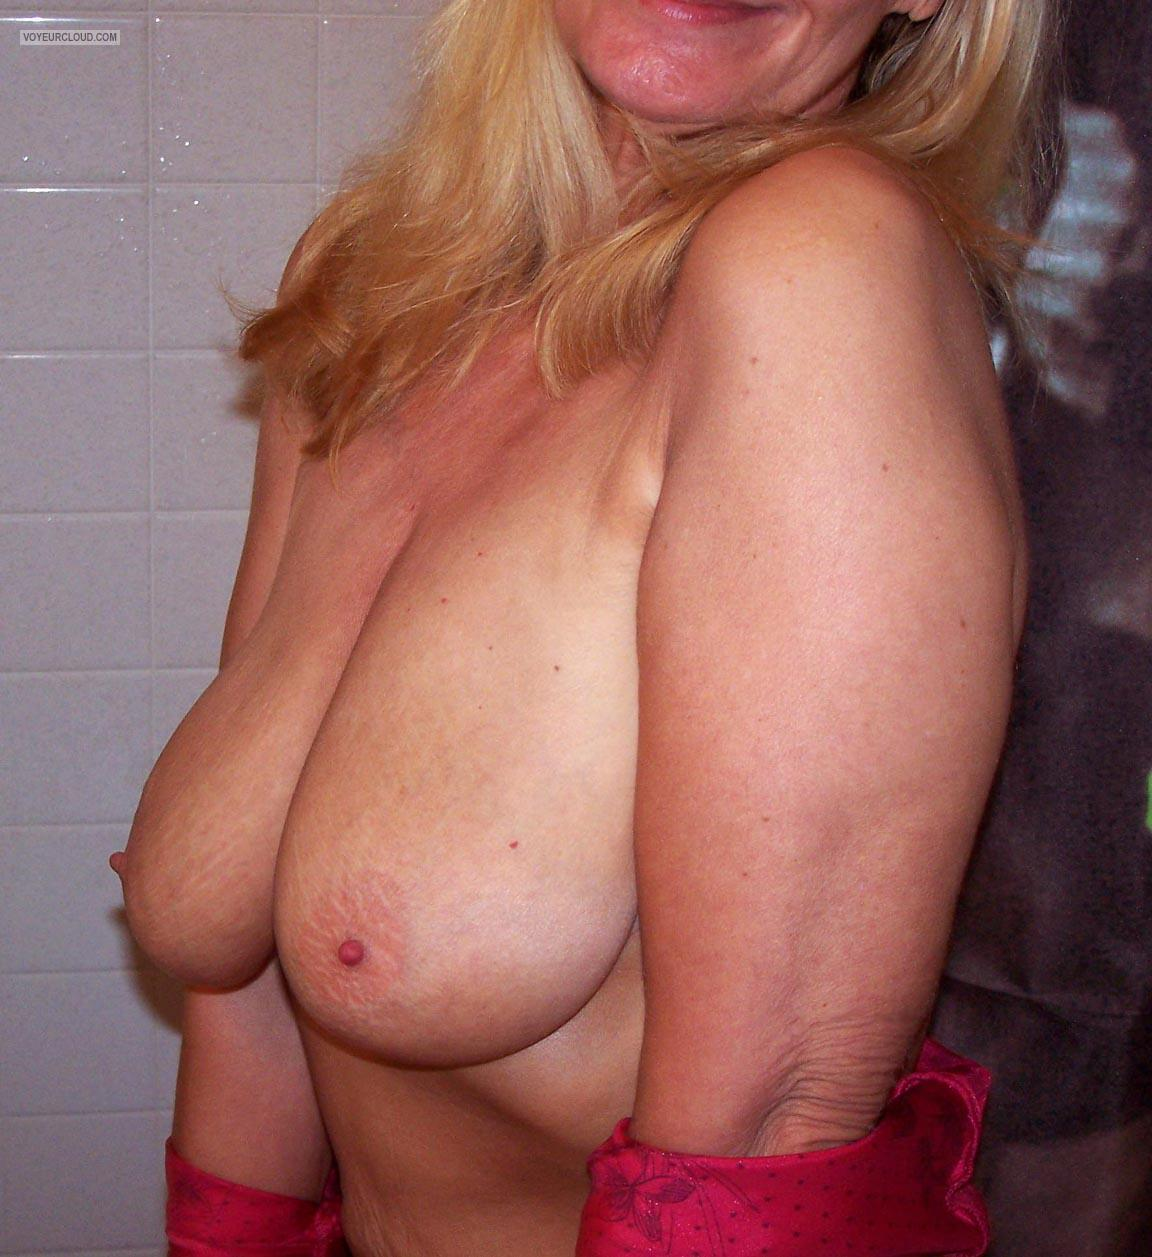 Tit Flash: Girlfriend's Big Tits - Missouri Hottie from United States